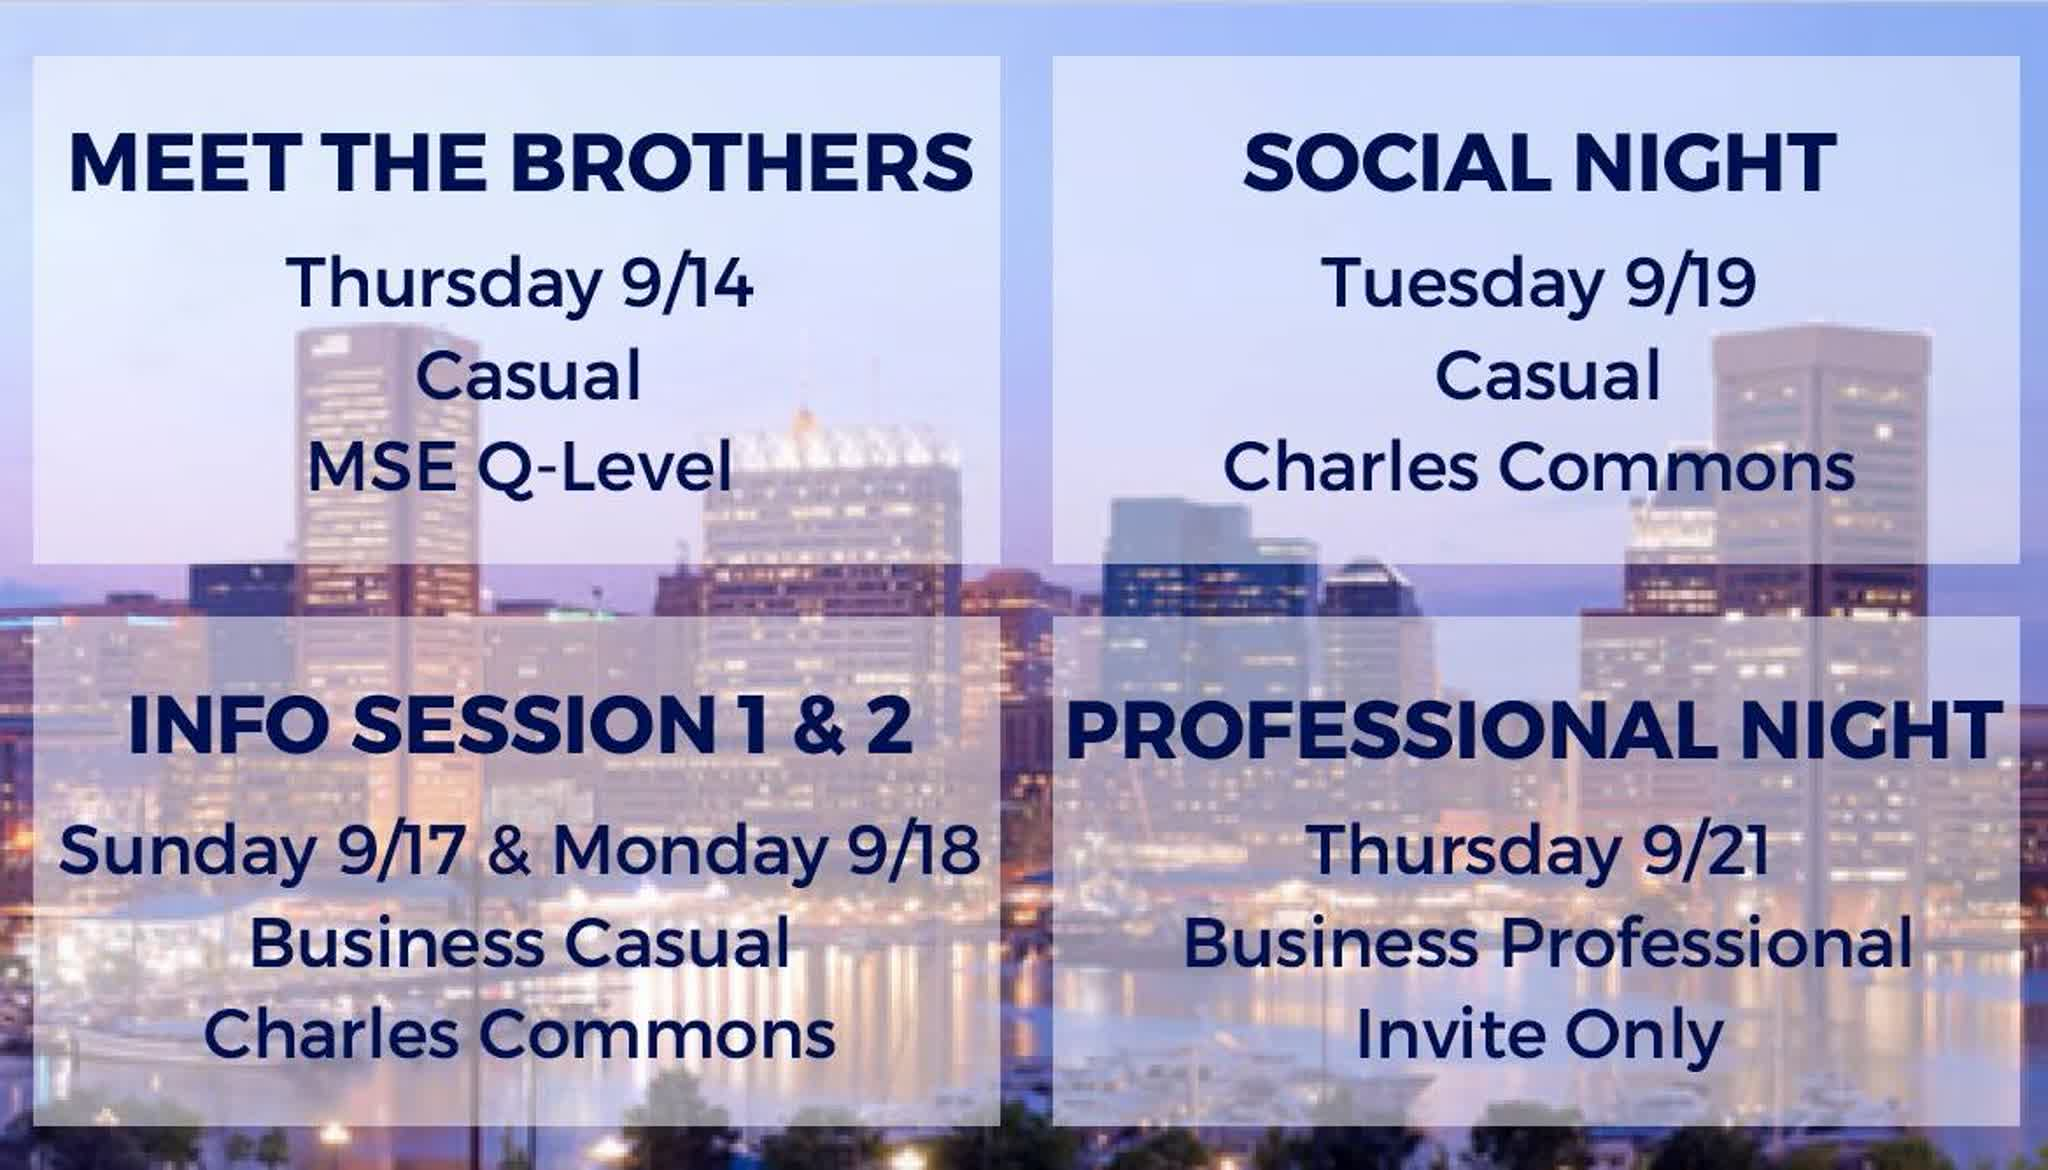 Information regarding JHU AKPsi Flyer is as follows Start date is September 14 2017 and End Date is September 21 2017 and File is Browse and File Name is JHU-Meet-the-Brothers_comp.jpg and Name of Ad/Event is JHU AKPsi Flyer and Panel is Main and Affiliation is Recognized Student Organization and Name is Sophia White and Email is swhite@apogee.us and